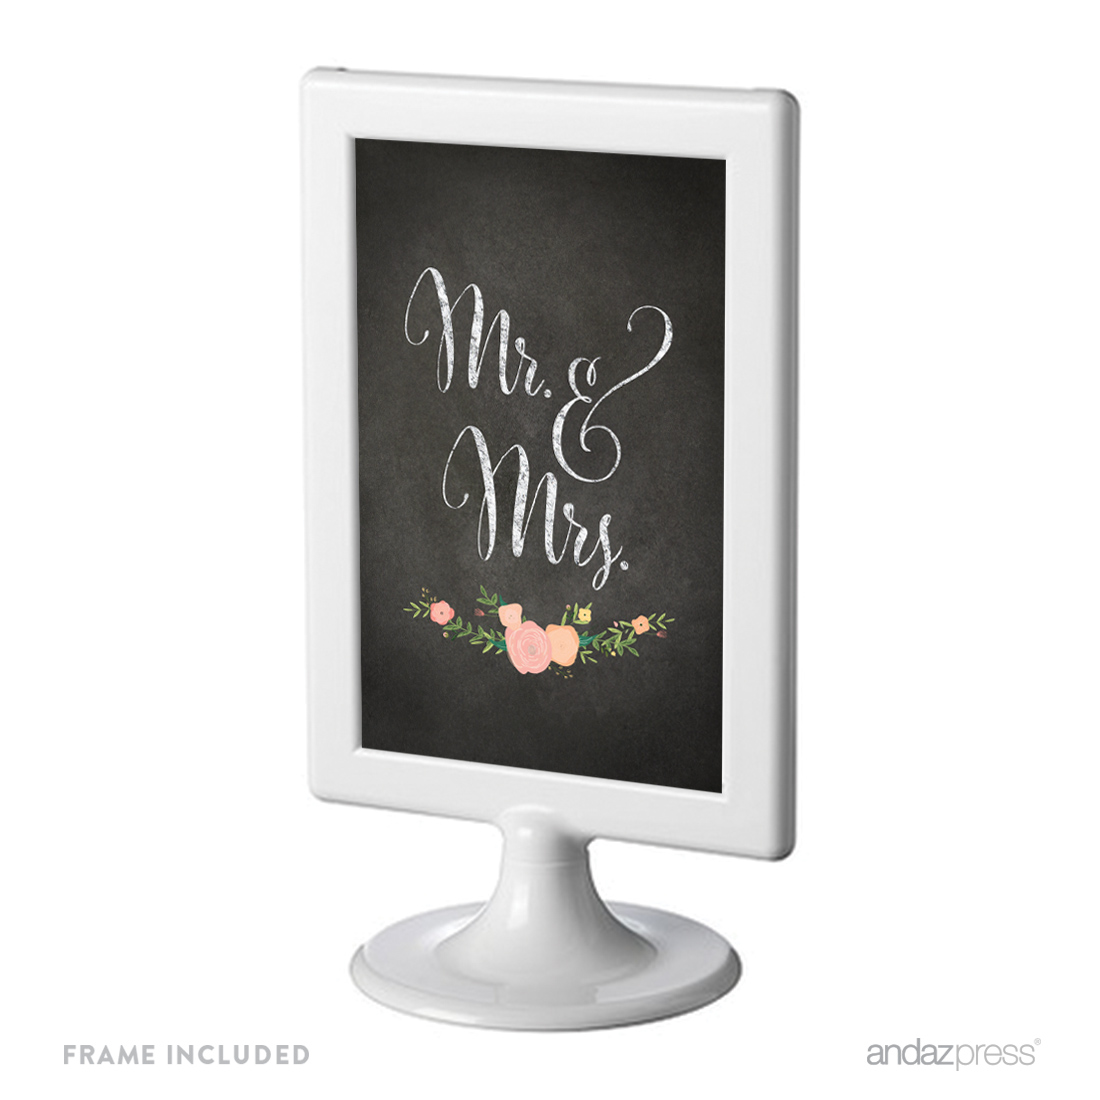 Mr. & Mrs. Framed Chalkboard & Floral Roses Wedding Party Signs